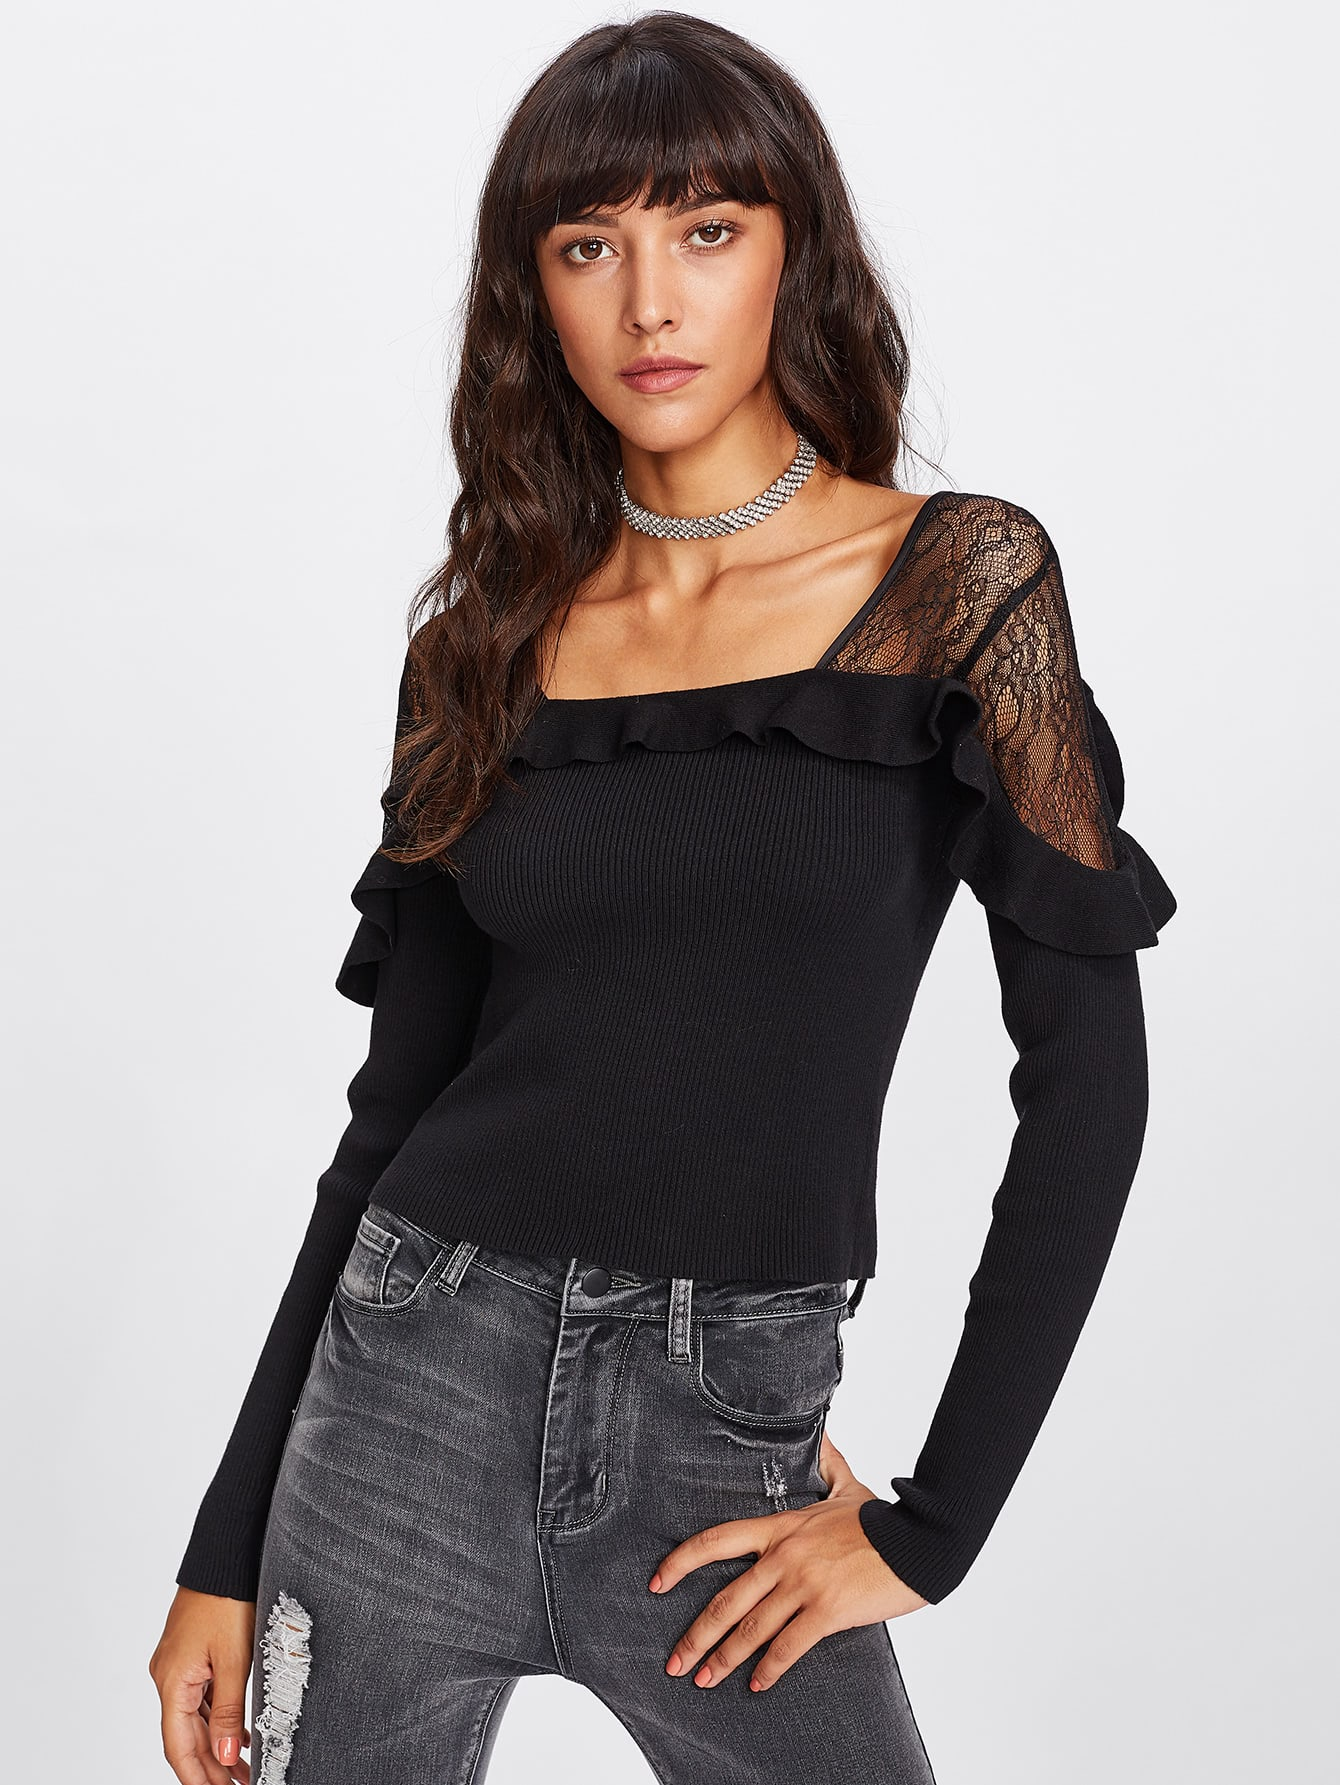 Lace Shoulder Ruffle Ribbed Knit Tee tee171019452